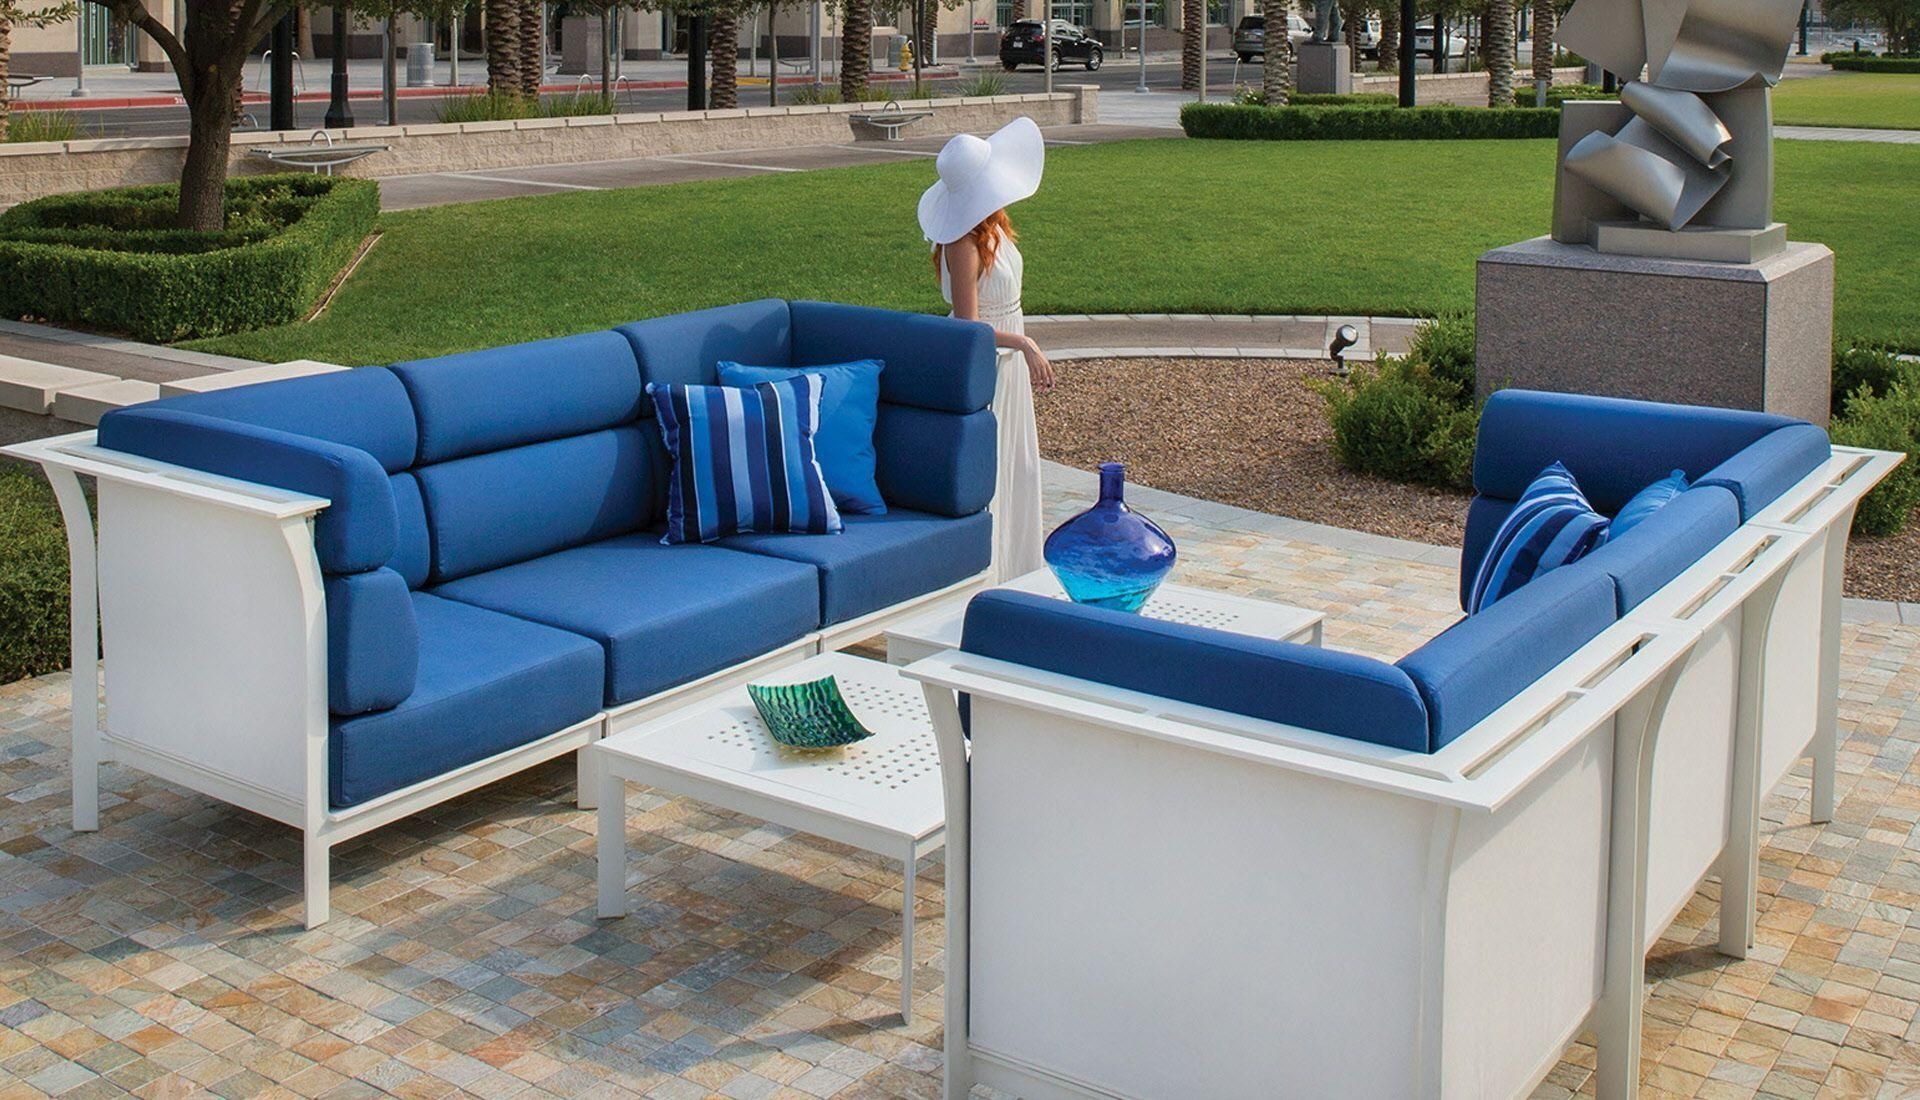 Outdoor Gazebos | Patio Decoration For Garden Sofa Covers (Image 13 of 22)